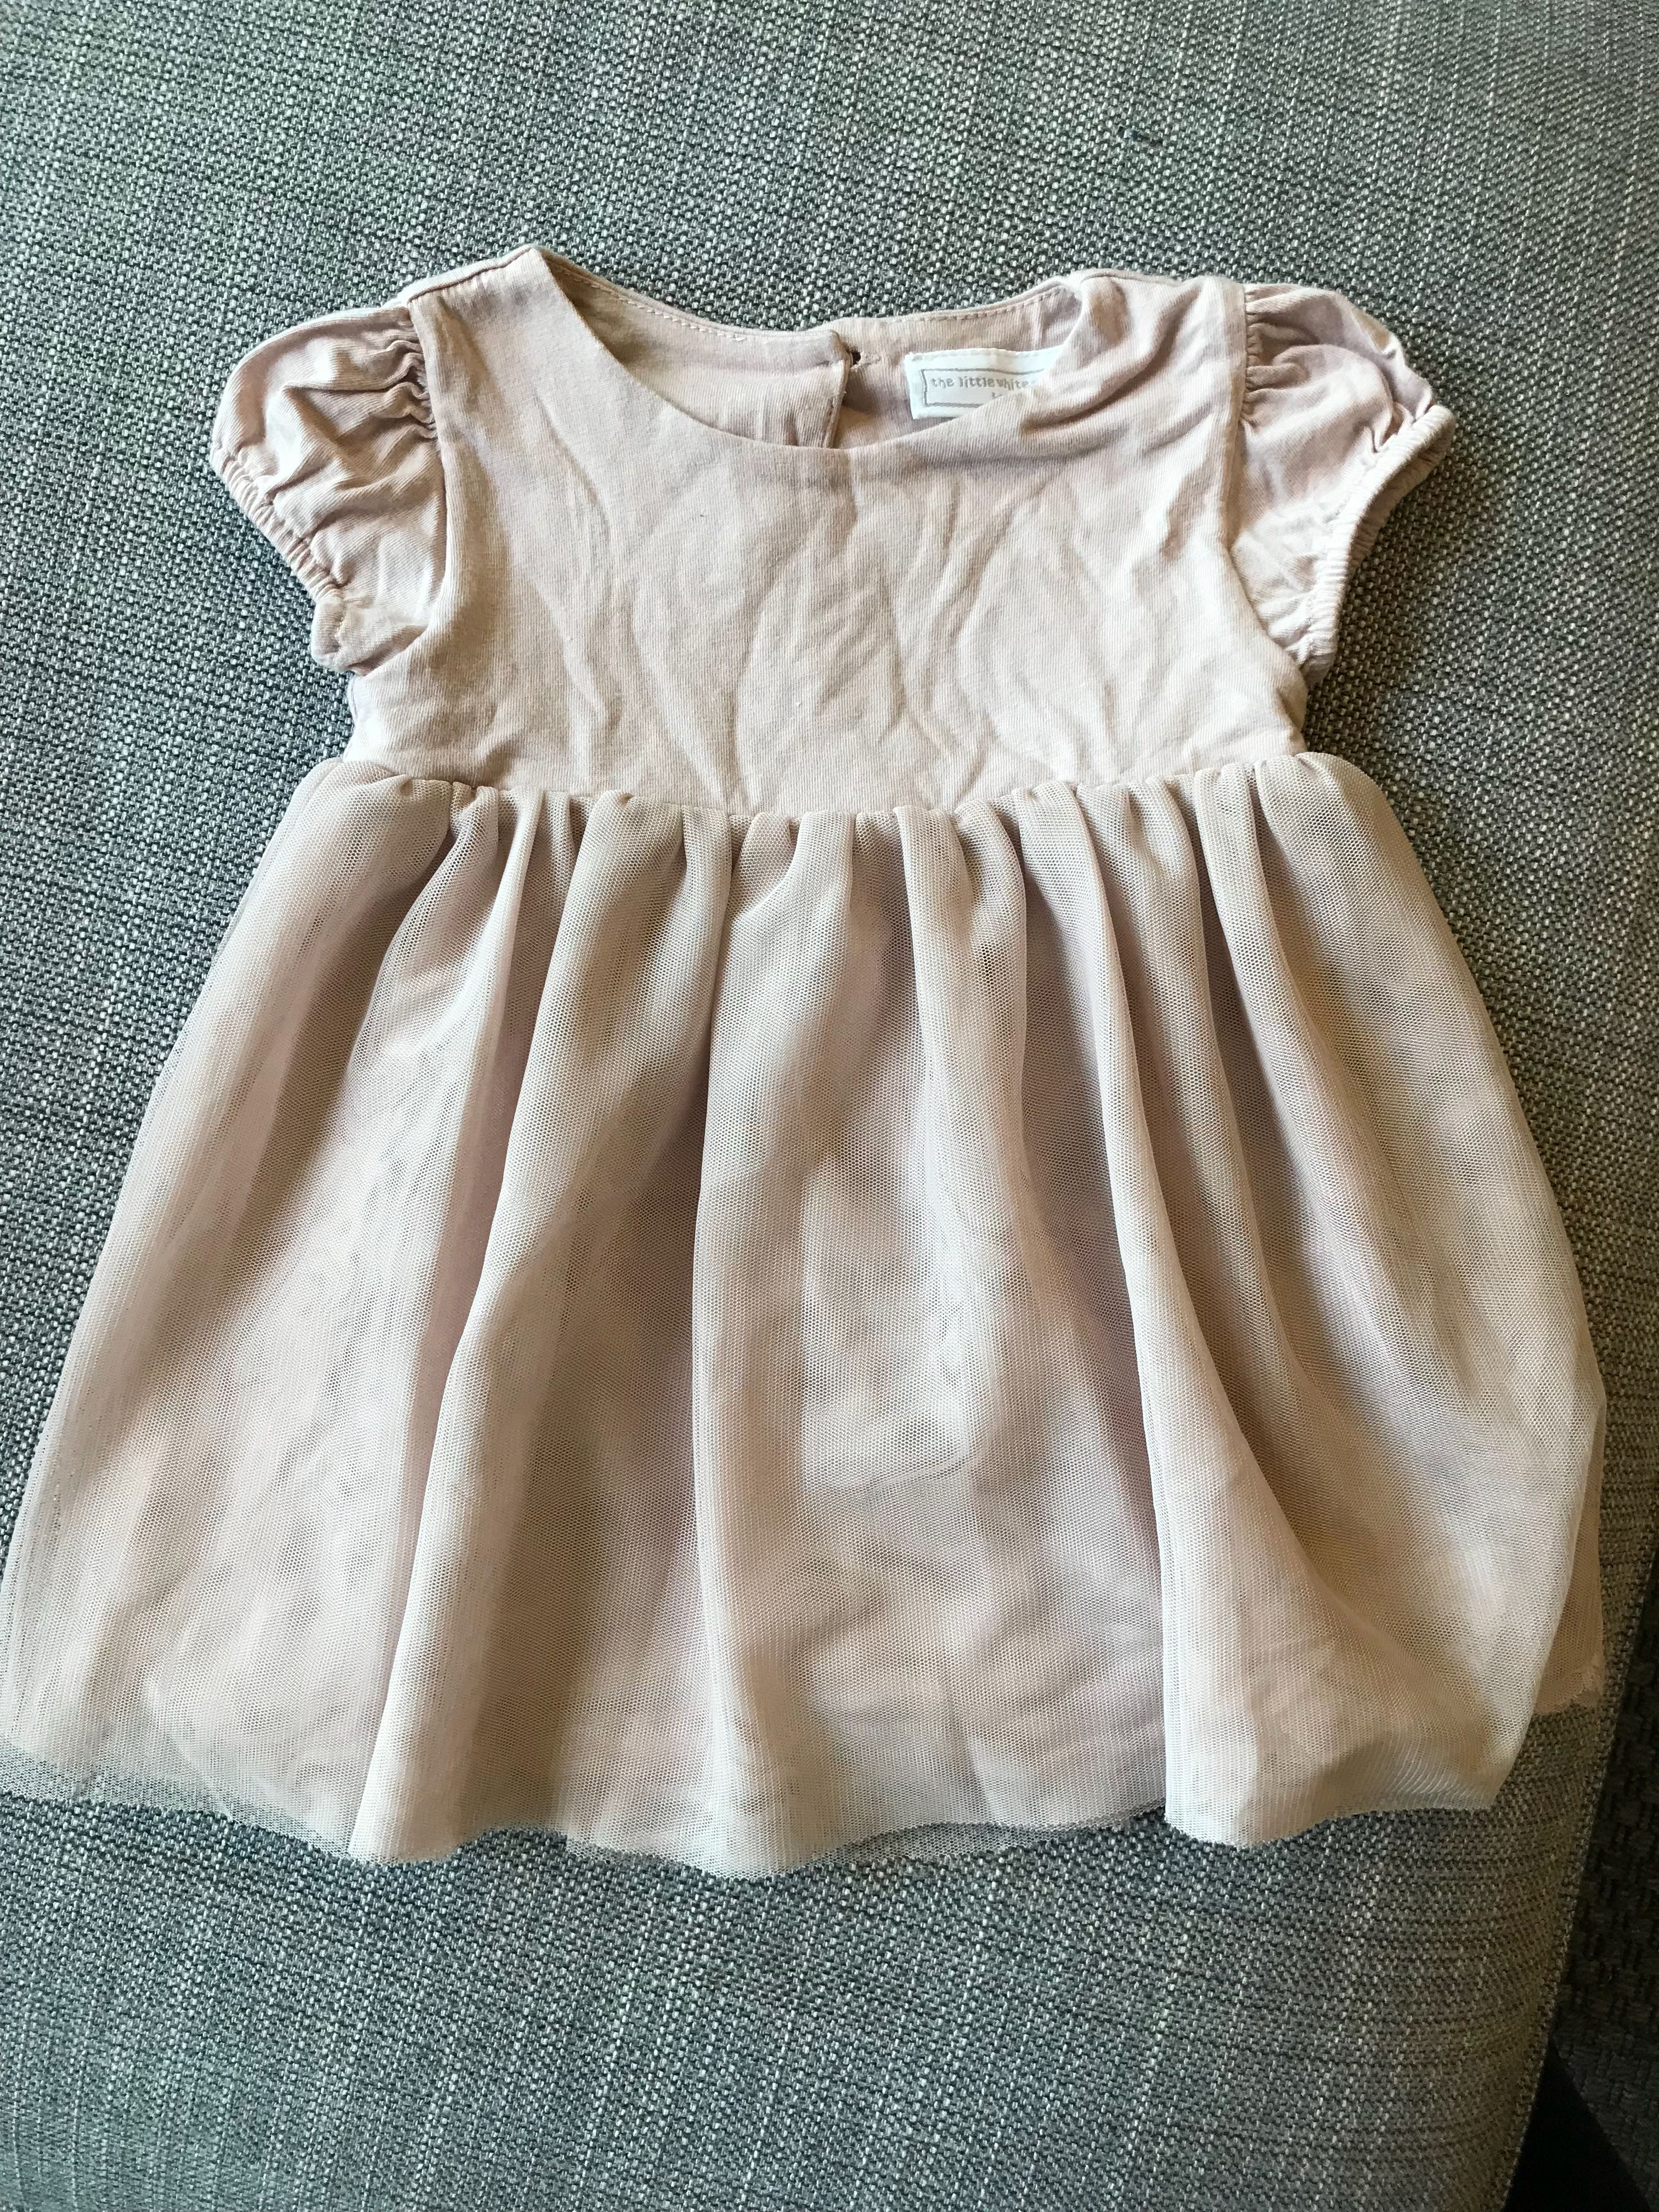 Little white company dress 6-9 months